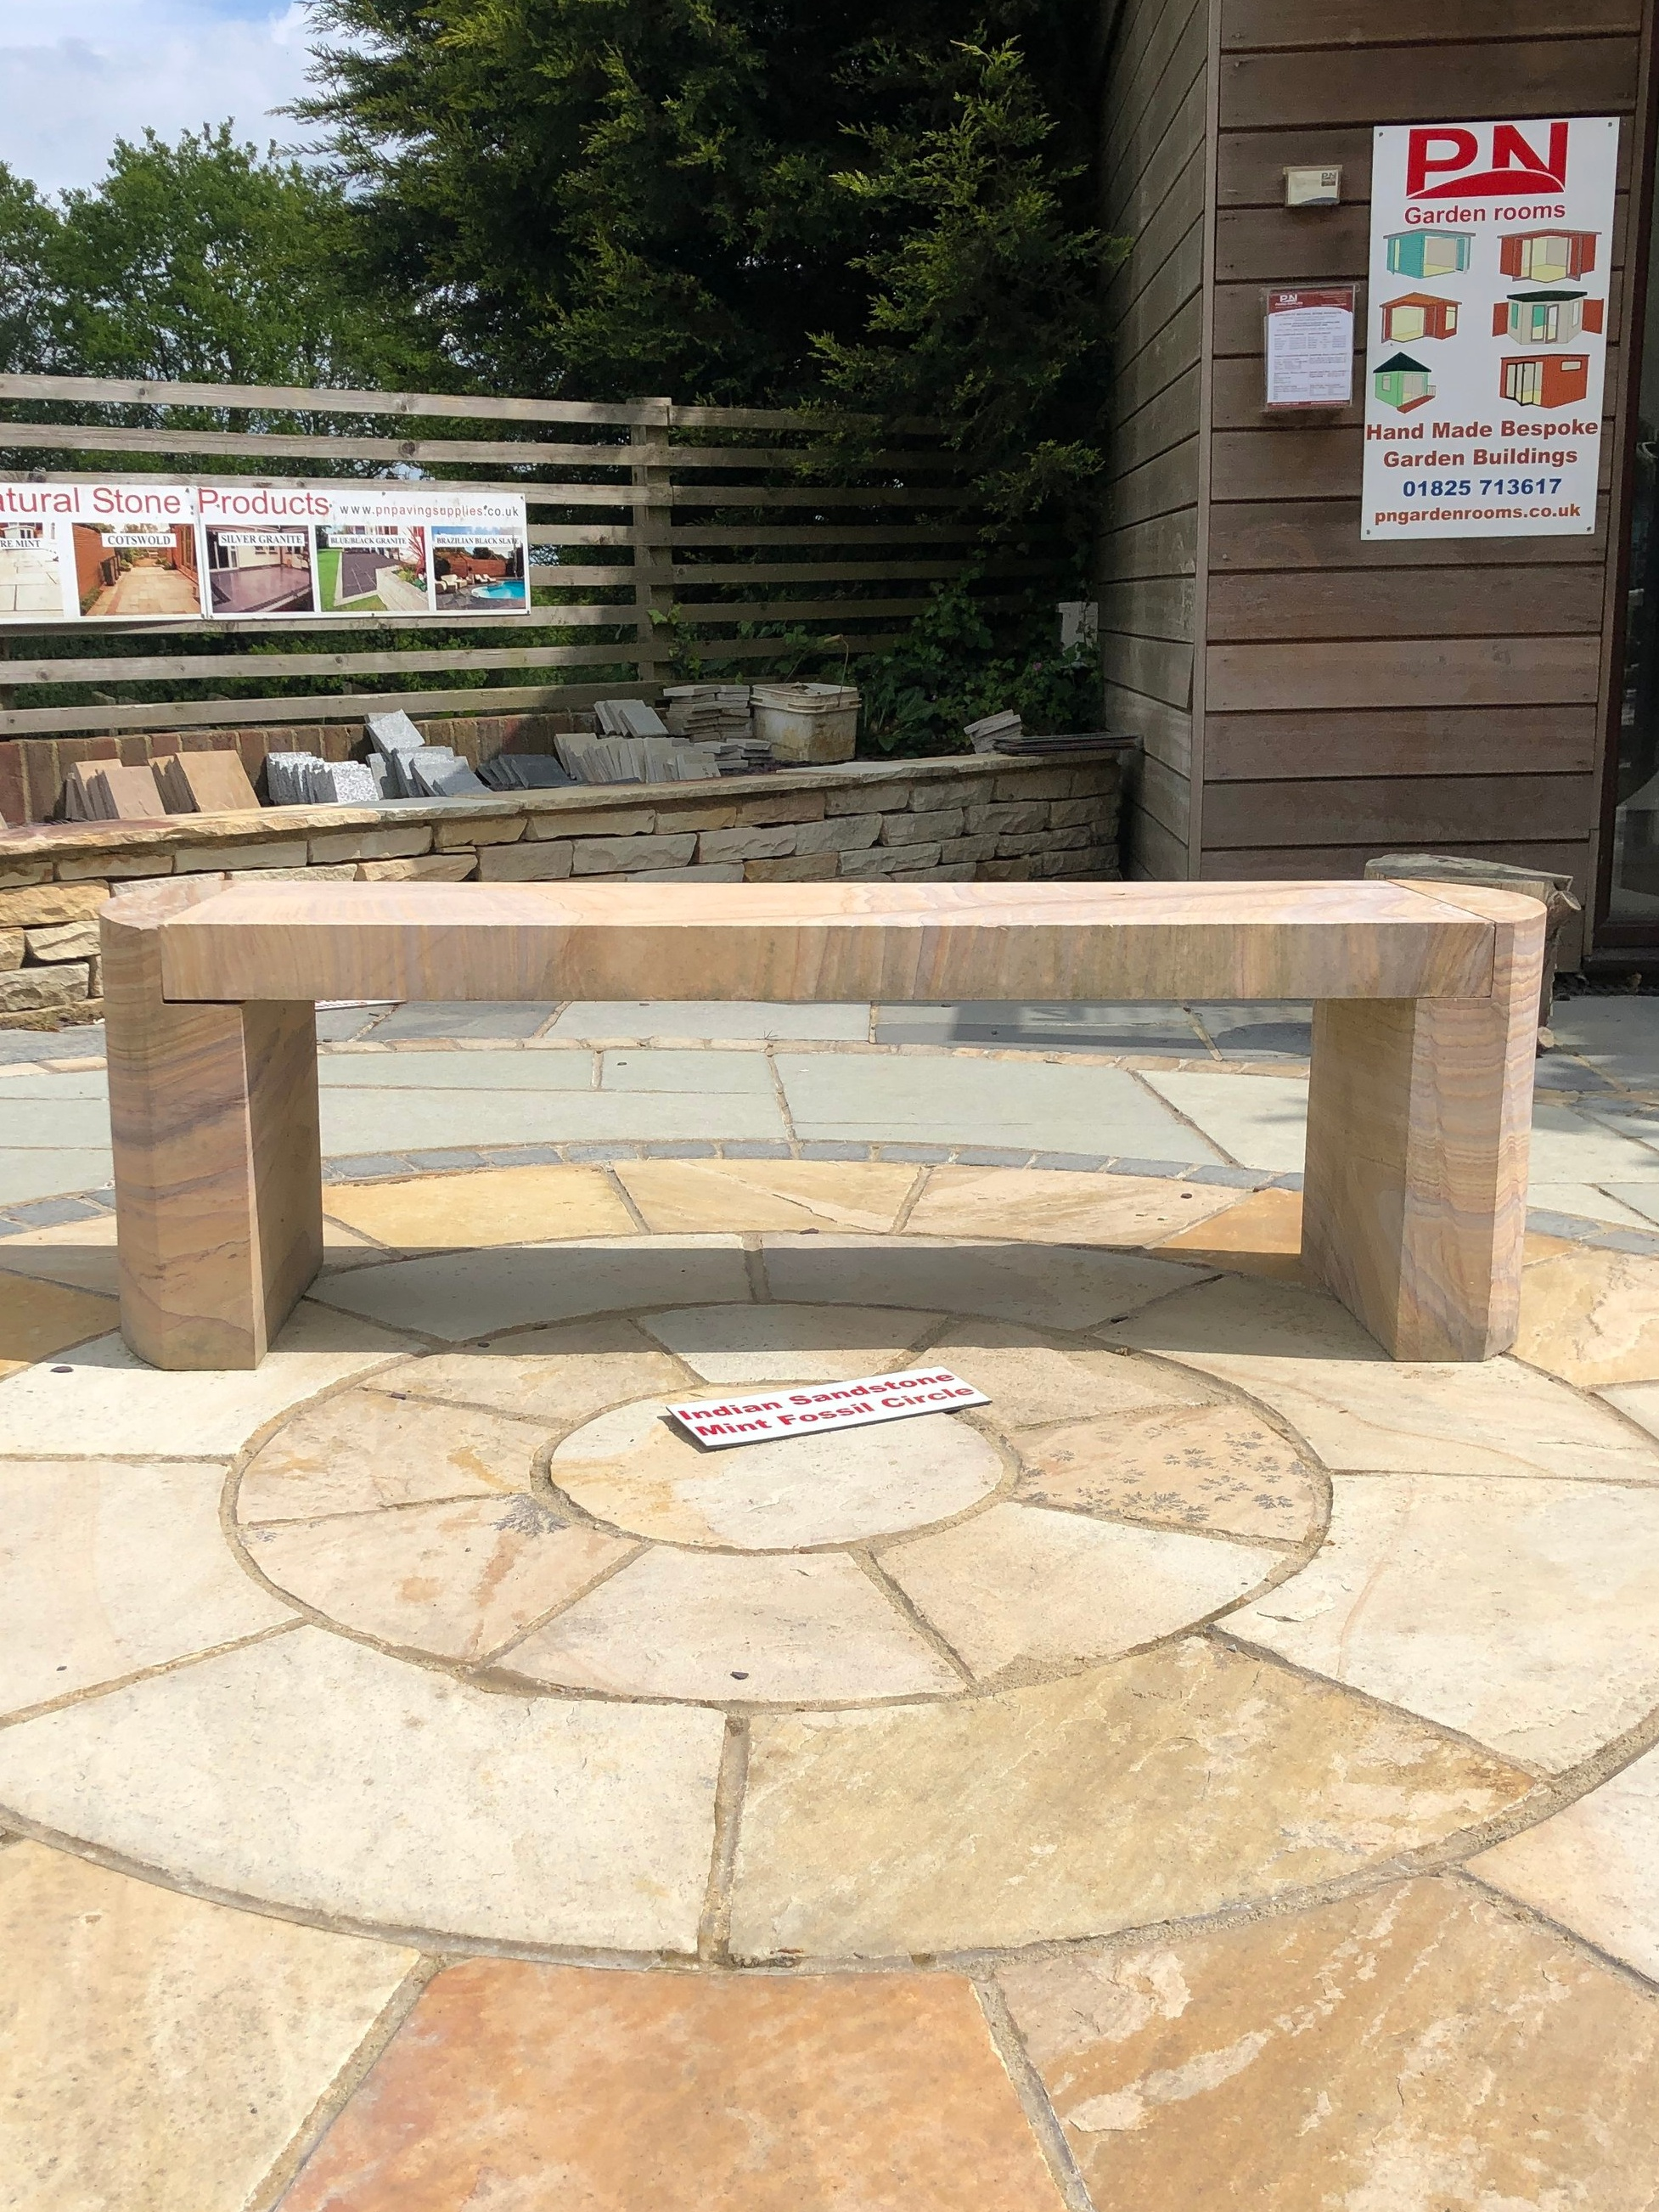 Rainbow Indian Sandstone Bench -   Click for more information and pricing.